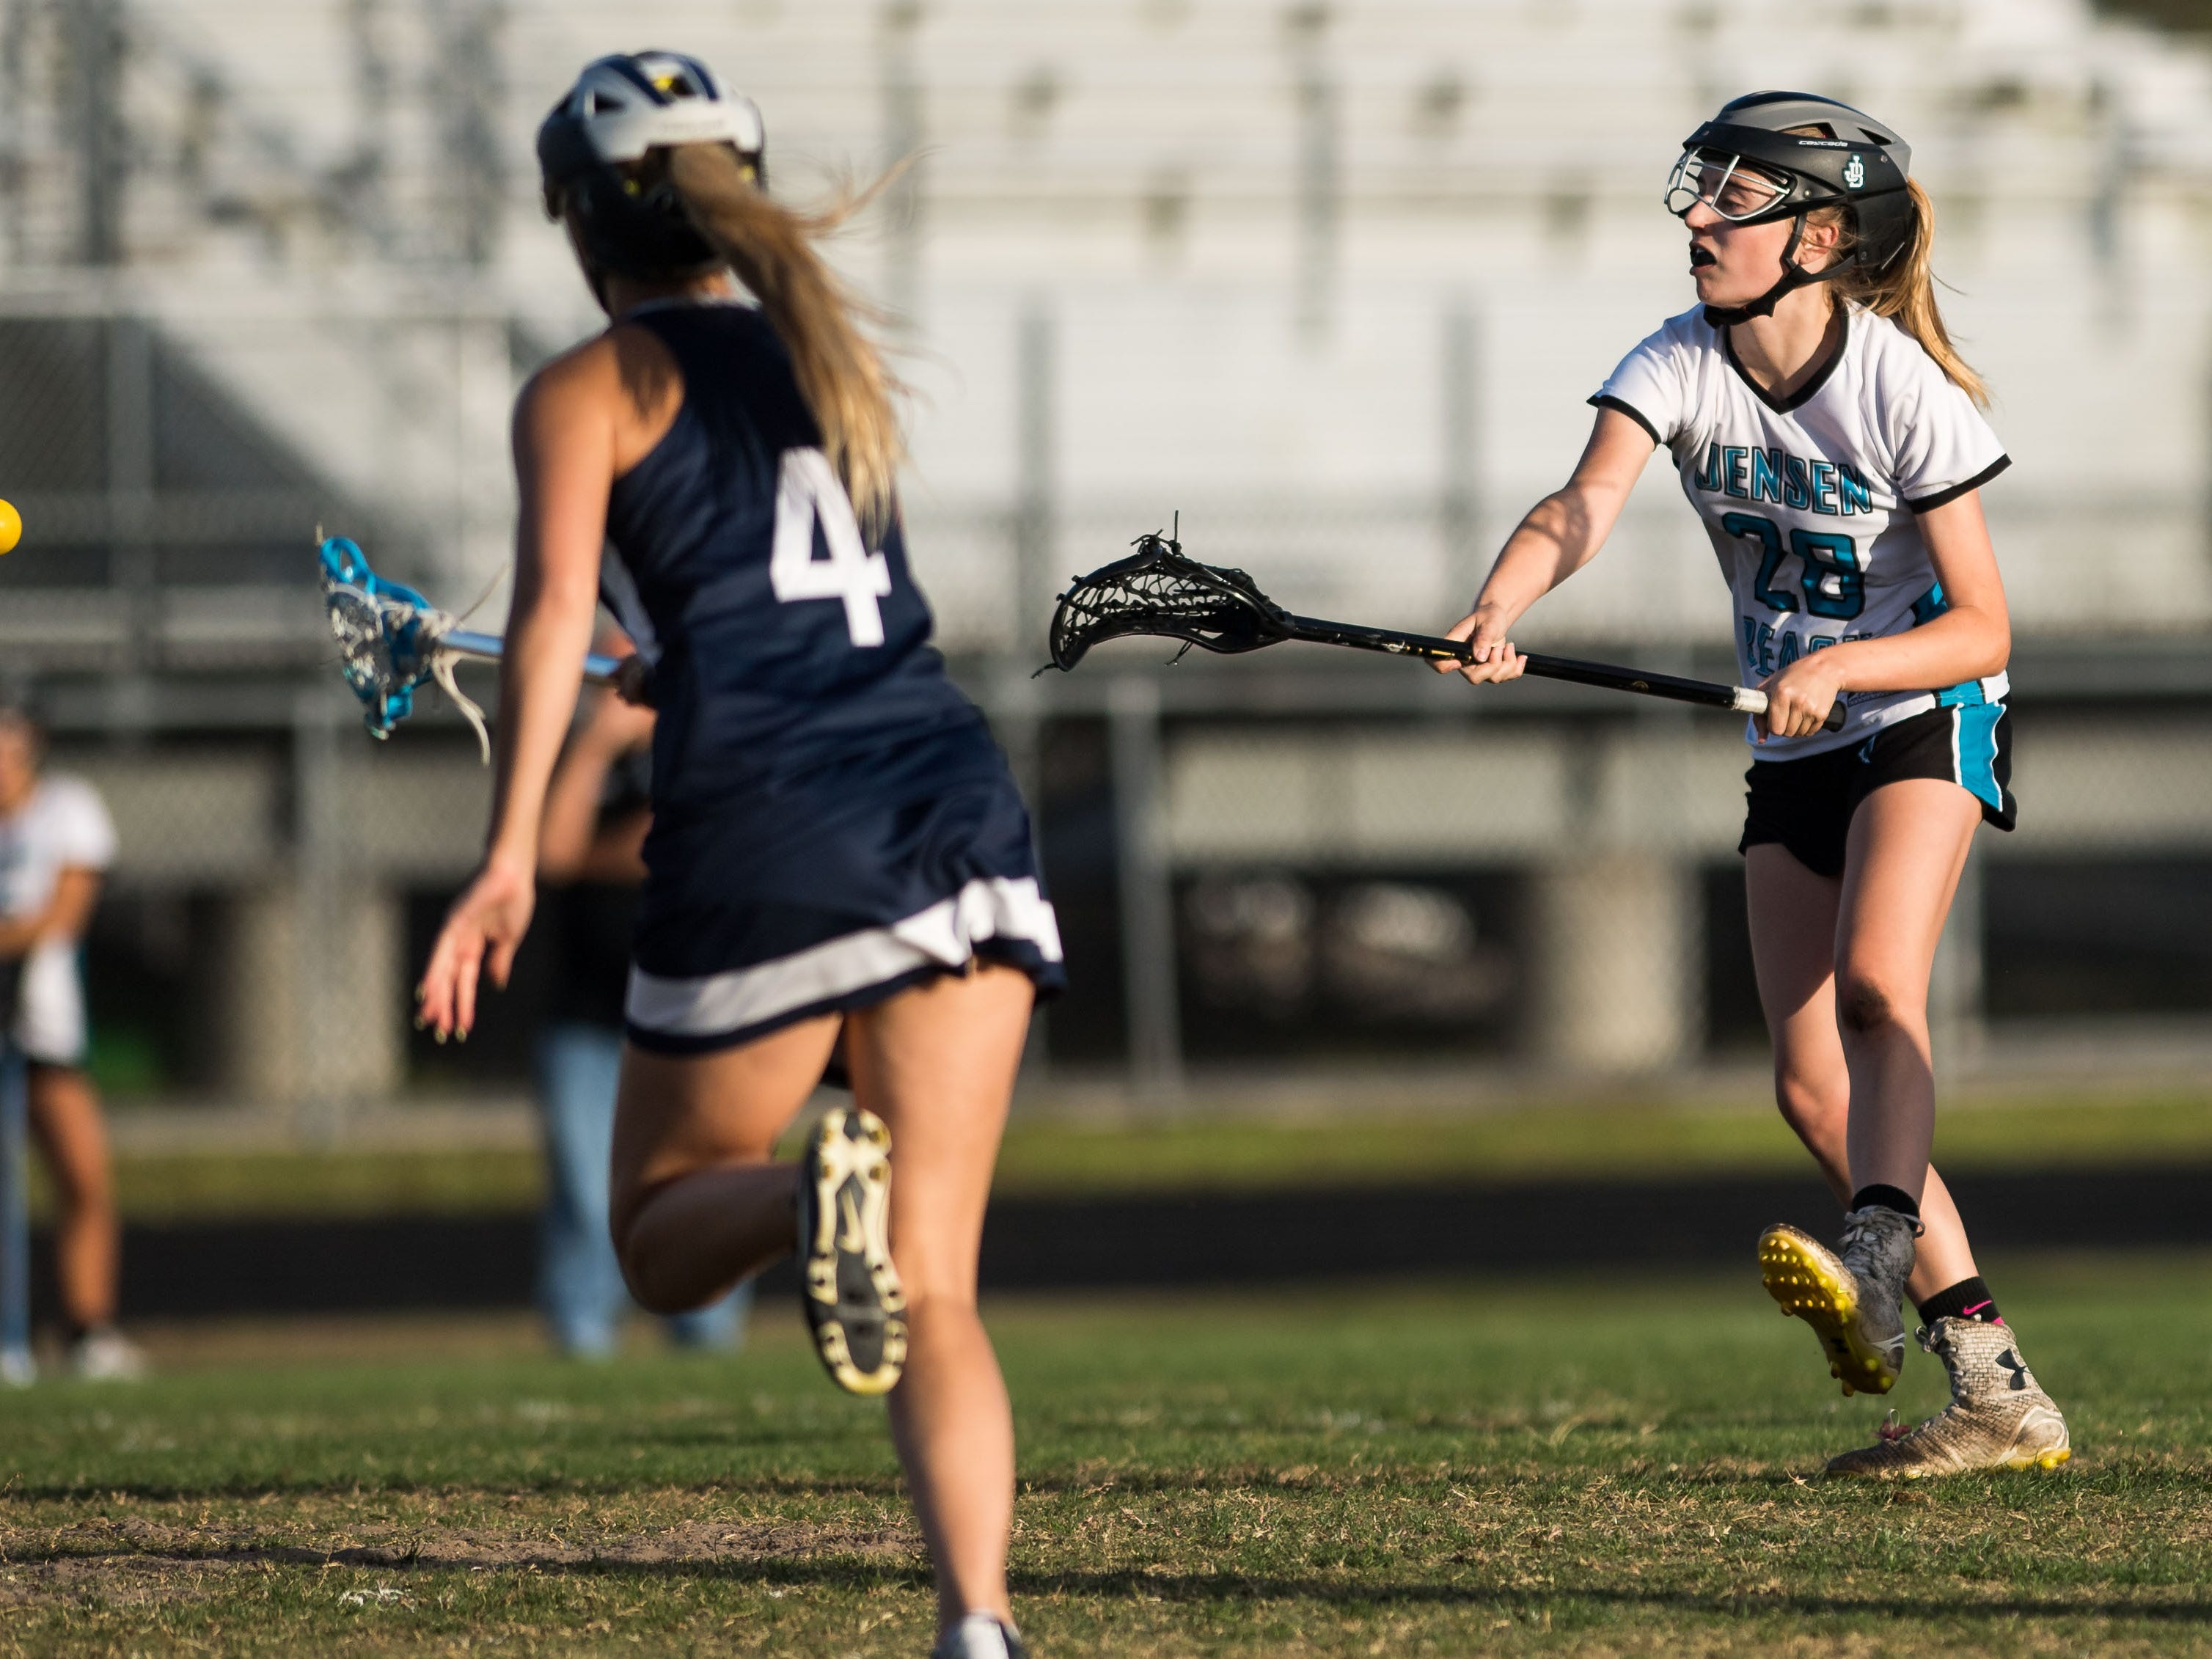 Jensen Beach's Kati Willis scores on a free-position shot in the first half against St. Edward's at the high school girls lacrosse game Thursday, March 28, 2019, at Jensen Beach High School.